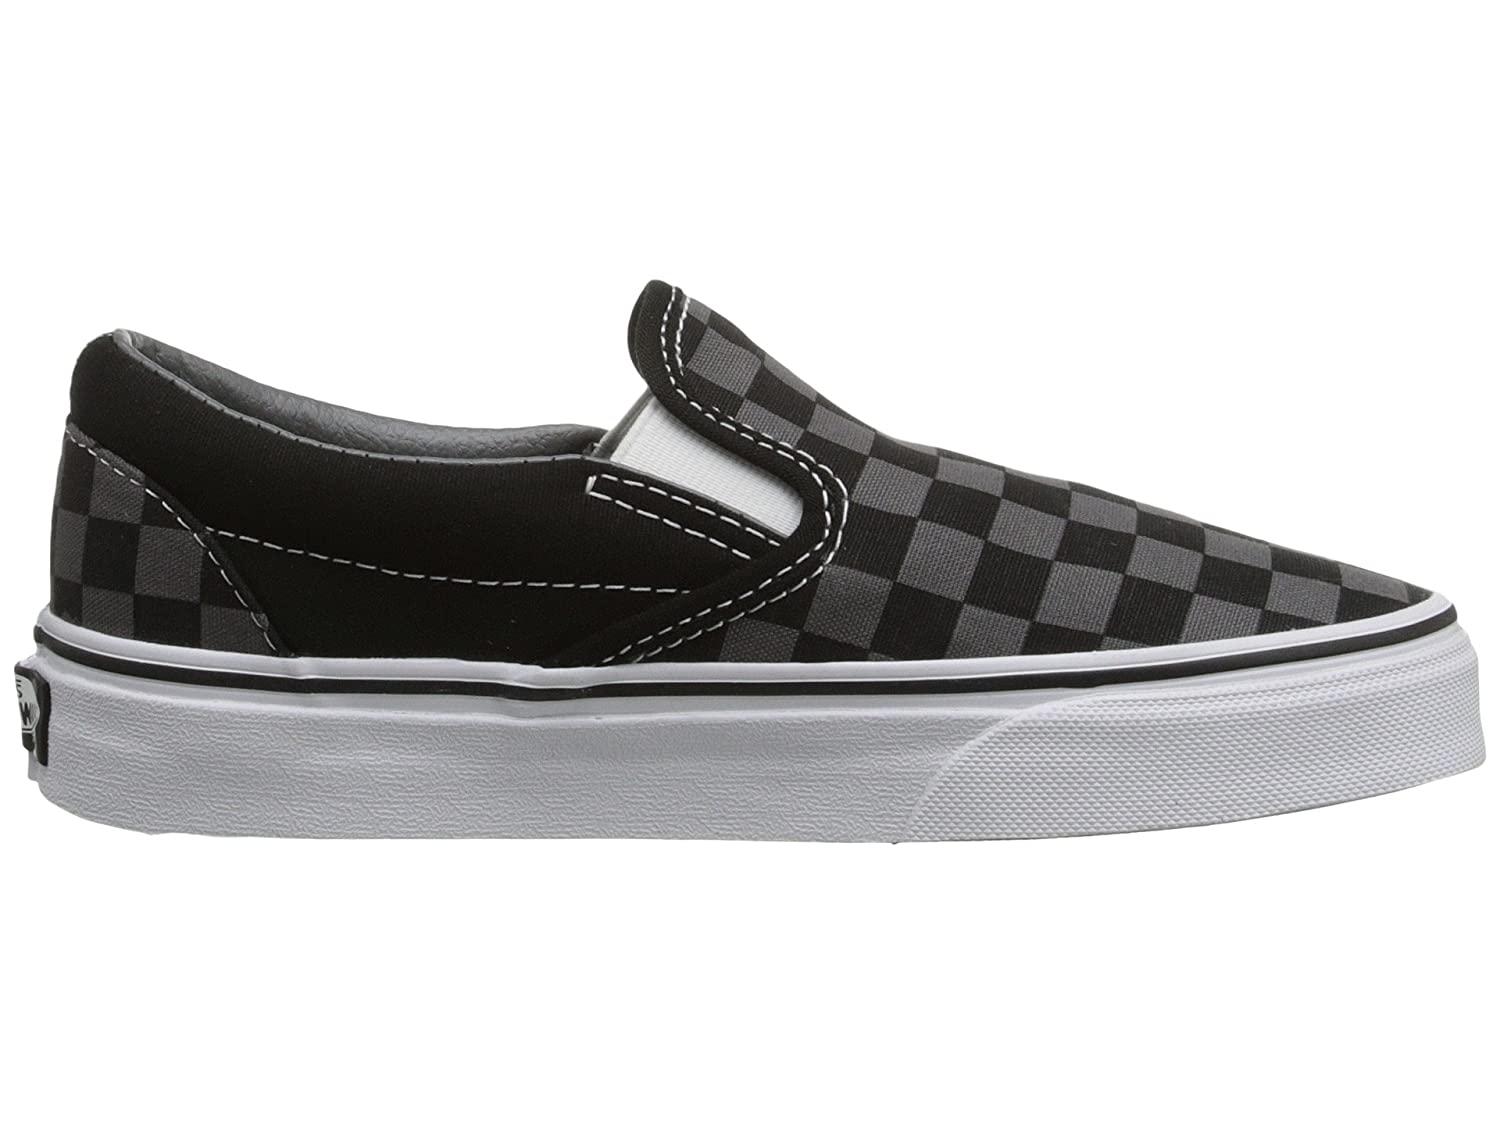 Vans Men's Classic Slip Skateboarding On (Suede & Suiting) Skateboarding Slip Shoes B01M21DCW9 14.5 B(M) US Women / 13 D(M) US Men|Black Pewter Grey Checkerboard 104aa4